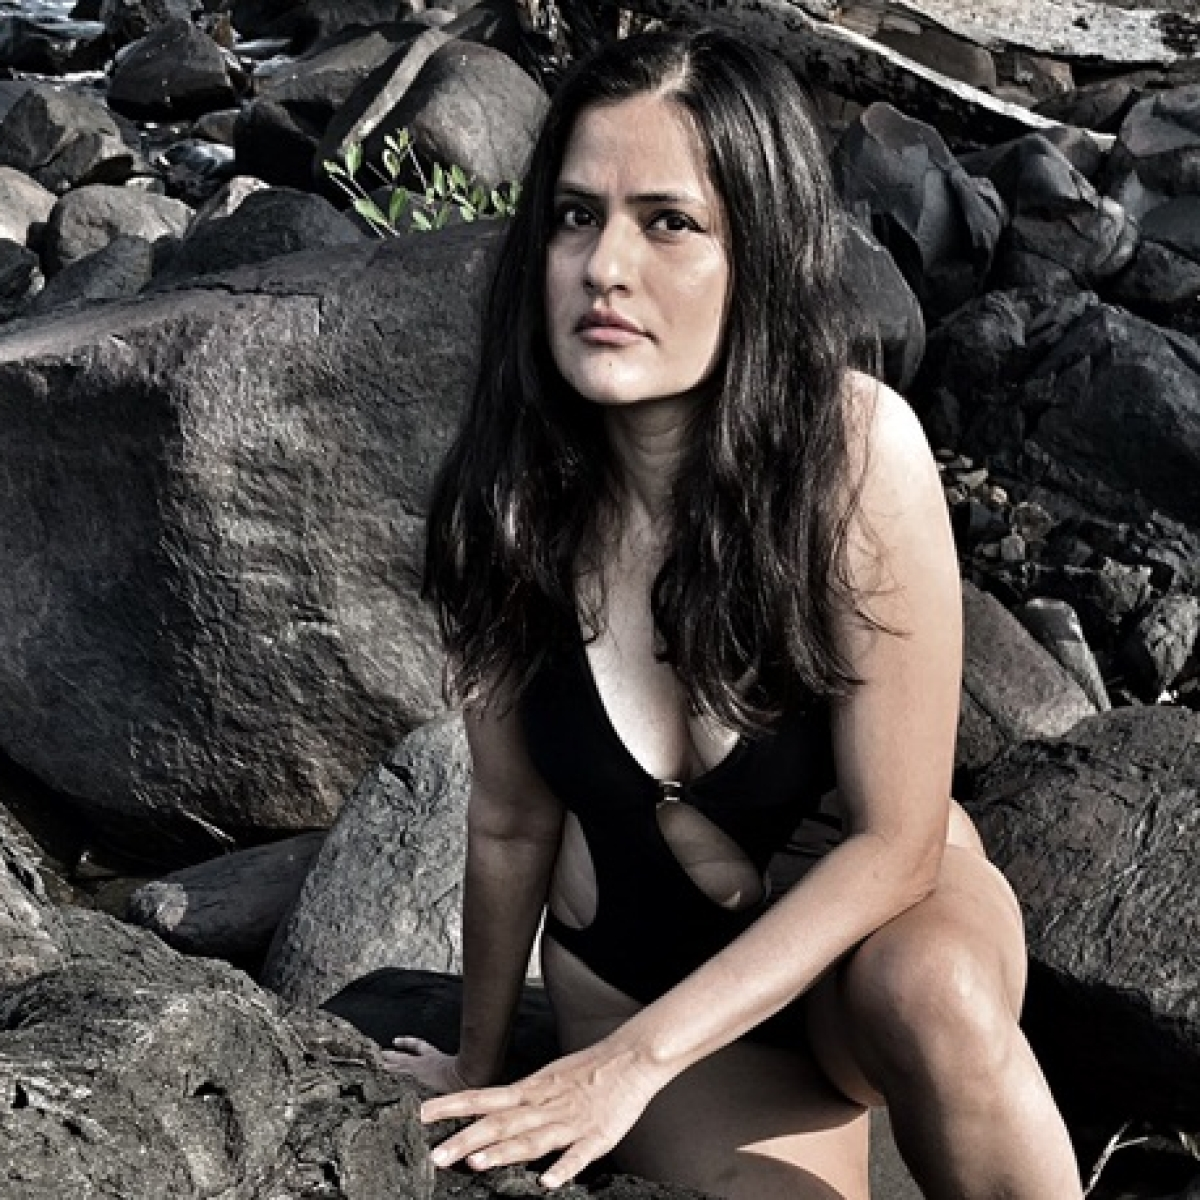 Sona Mohapatra on the rocks: 43-year-old singer looks fierce in a sexy black monokini